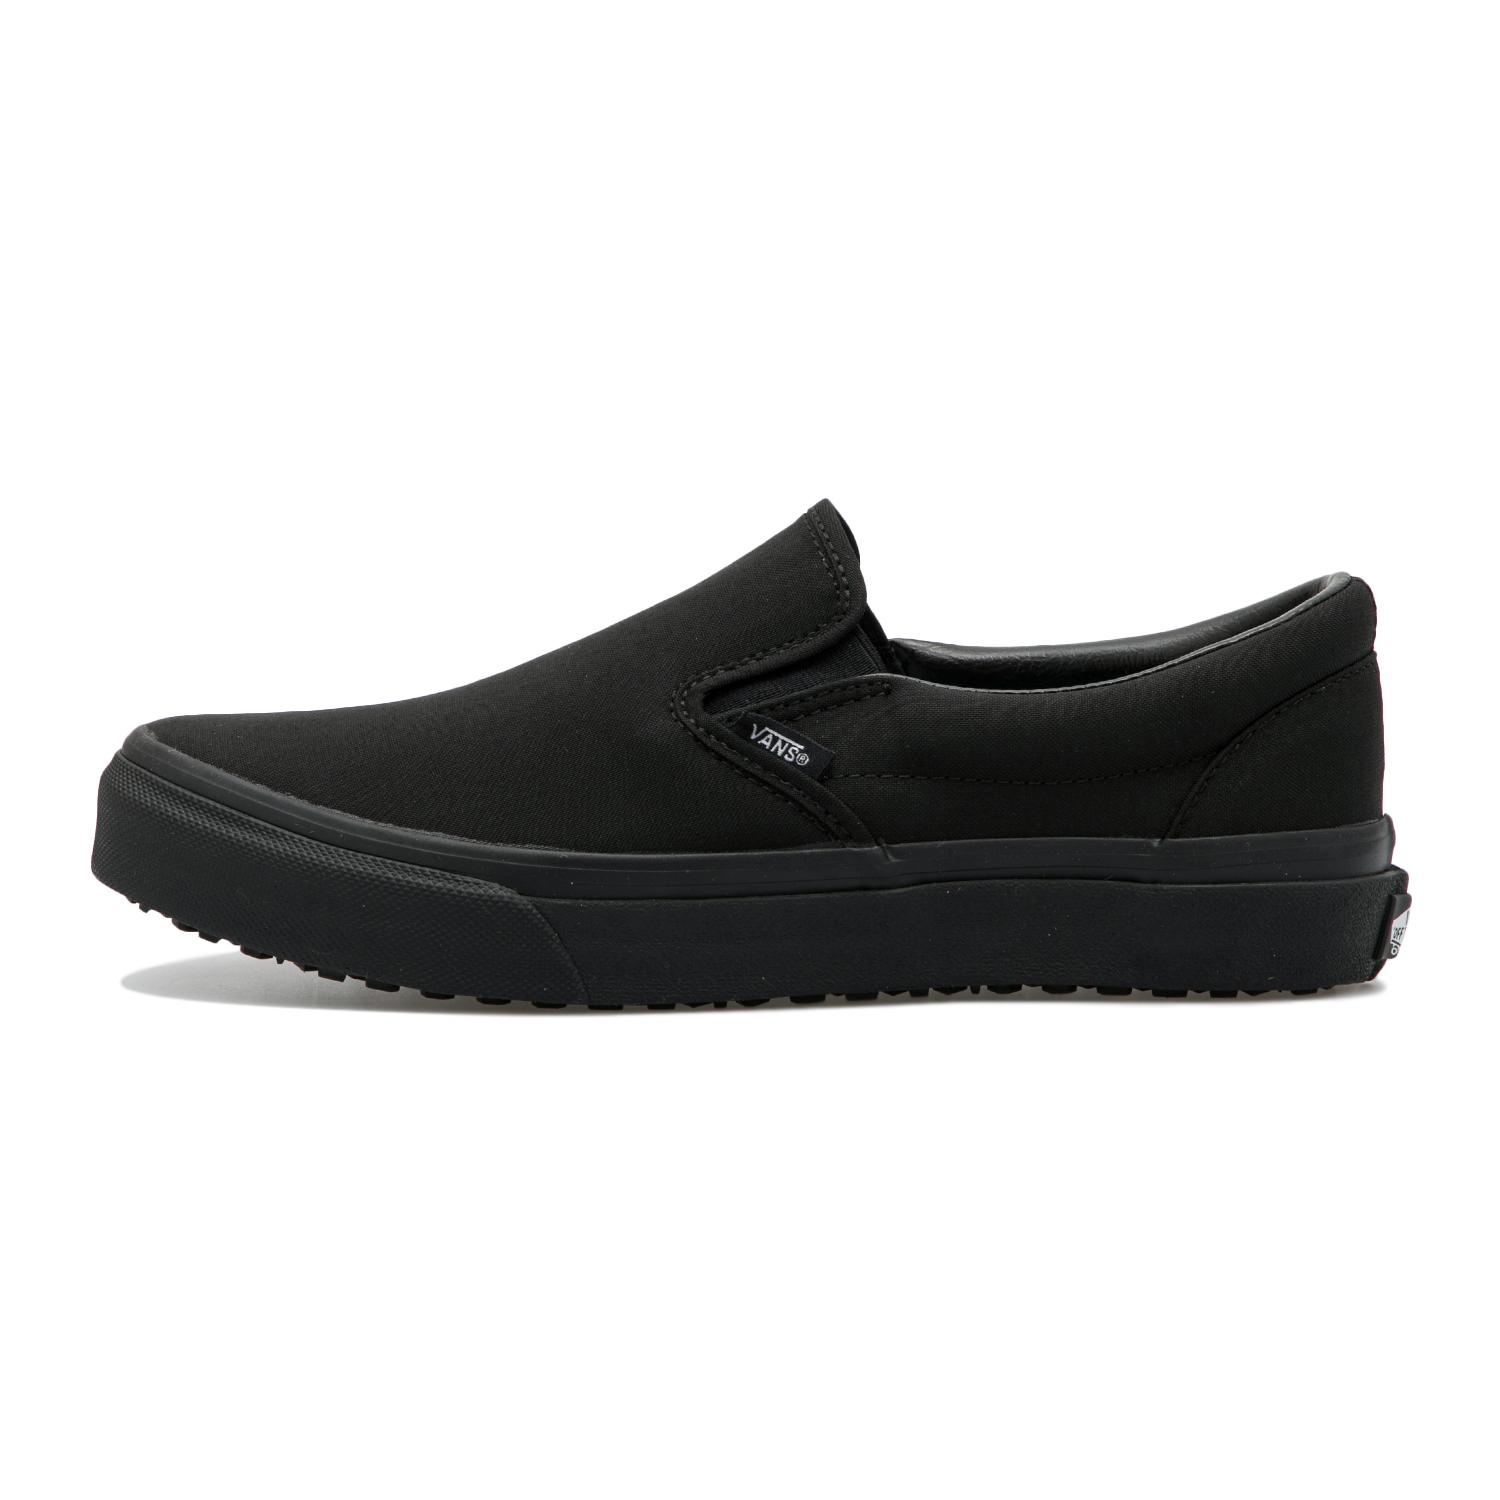 【VANS】 ヴァンズ SLIP ON スリッポンH/SHIELD V98CF H/SHIELD M.BLACK